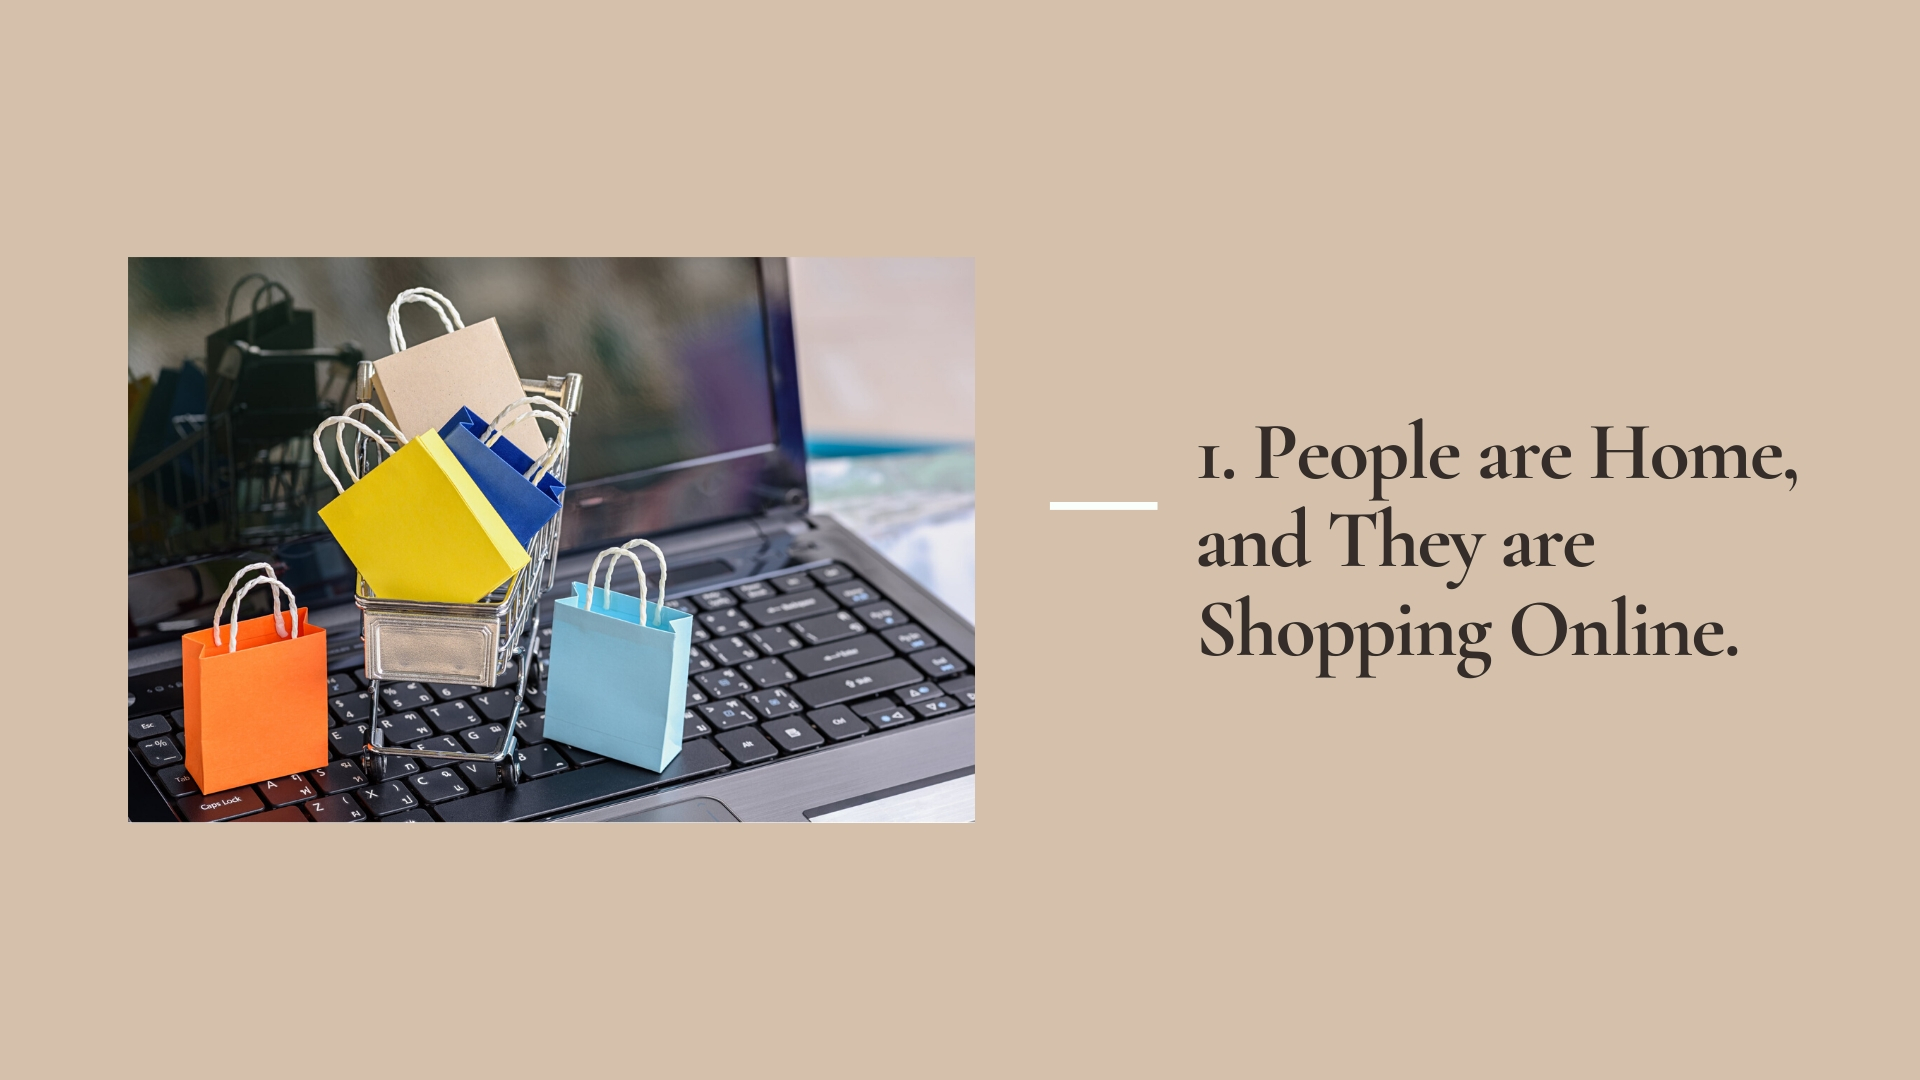 1. People are Home, and They are Shopping Online | 5 Tips for Digital Marketing During the Coronavirus Scare